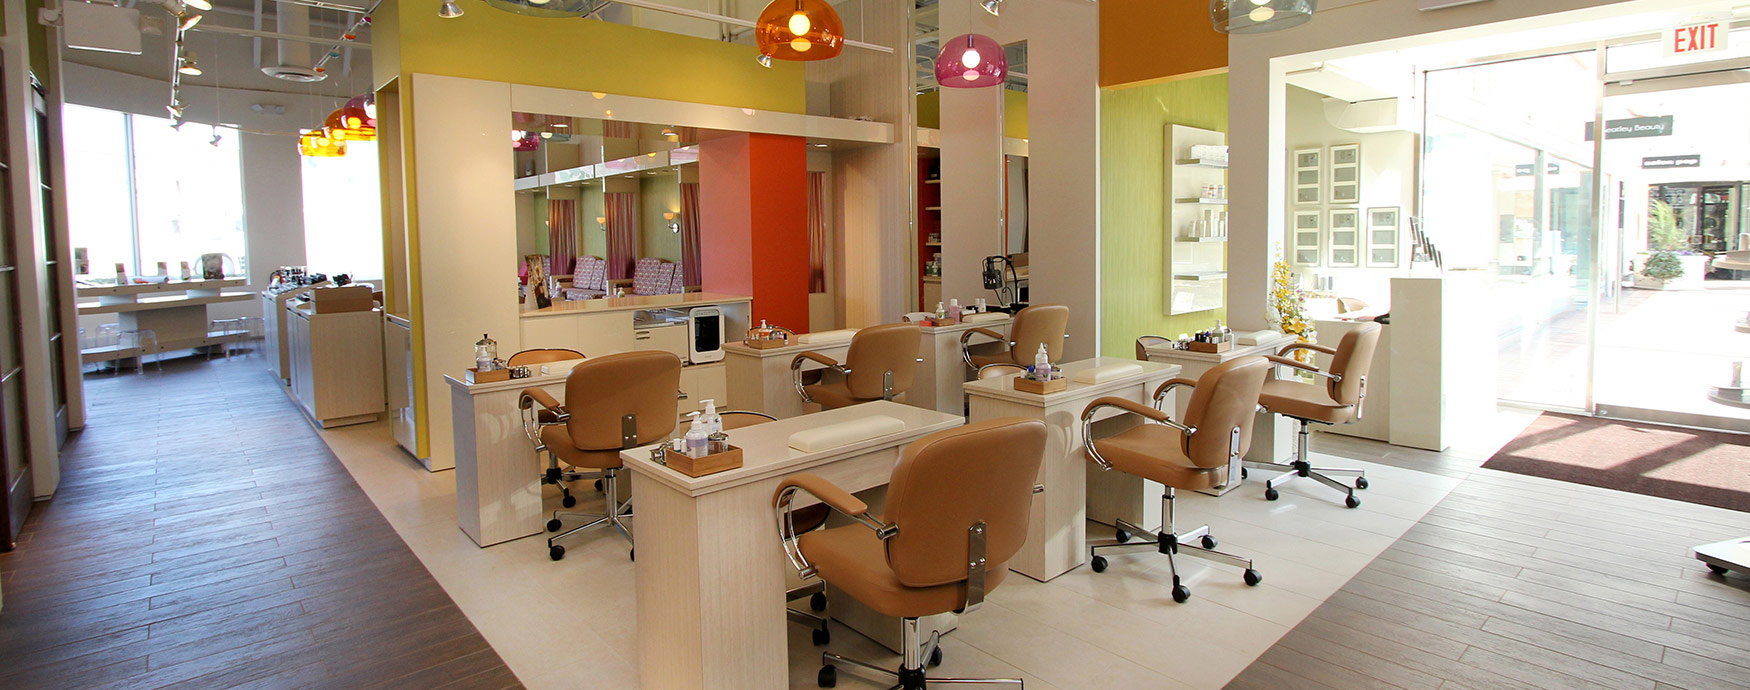 Wheatley Beauty Nails & Spa | Wheatley Plaza